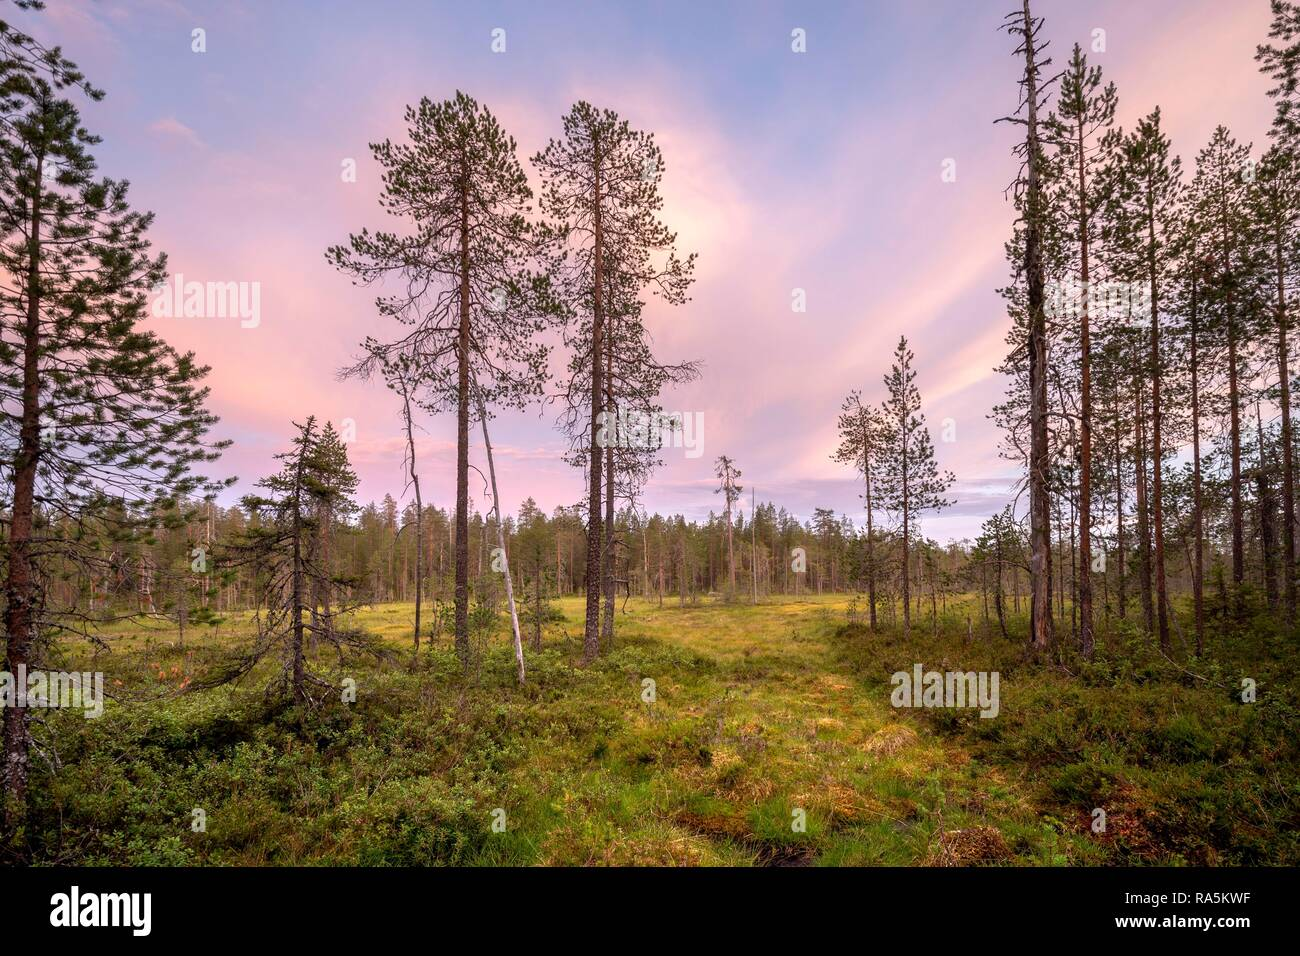 Moor landscape with conifers, sunset red, pink clouds in the sky, Hossa National Park, Ruhtinansa, Suomussalmi, Kainuu, Finland - Stock Image